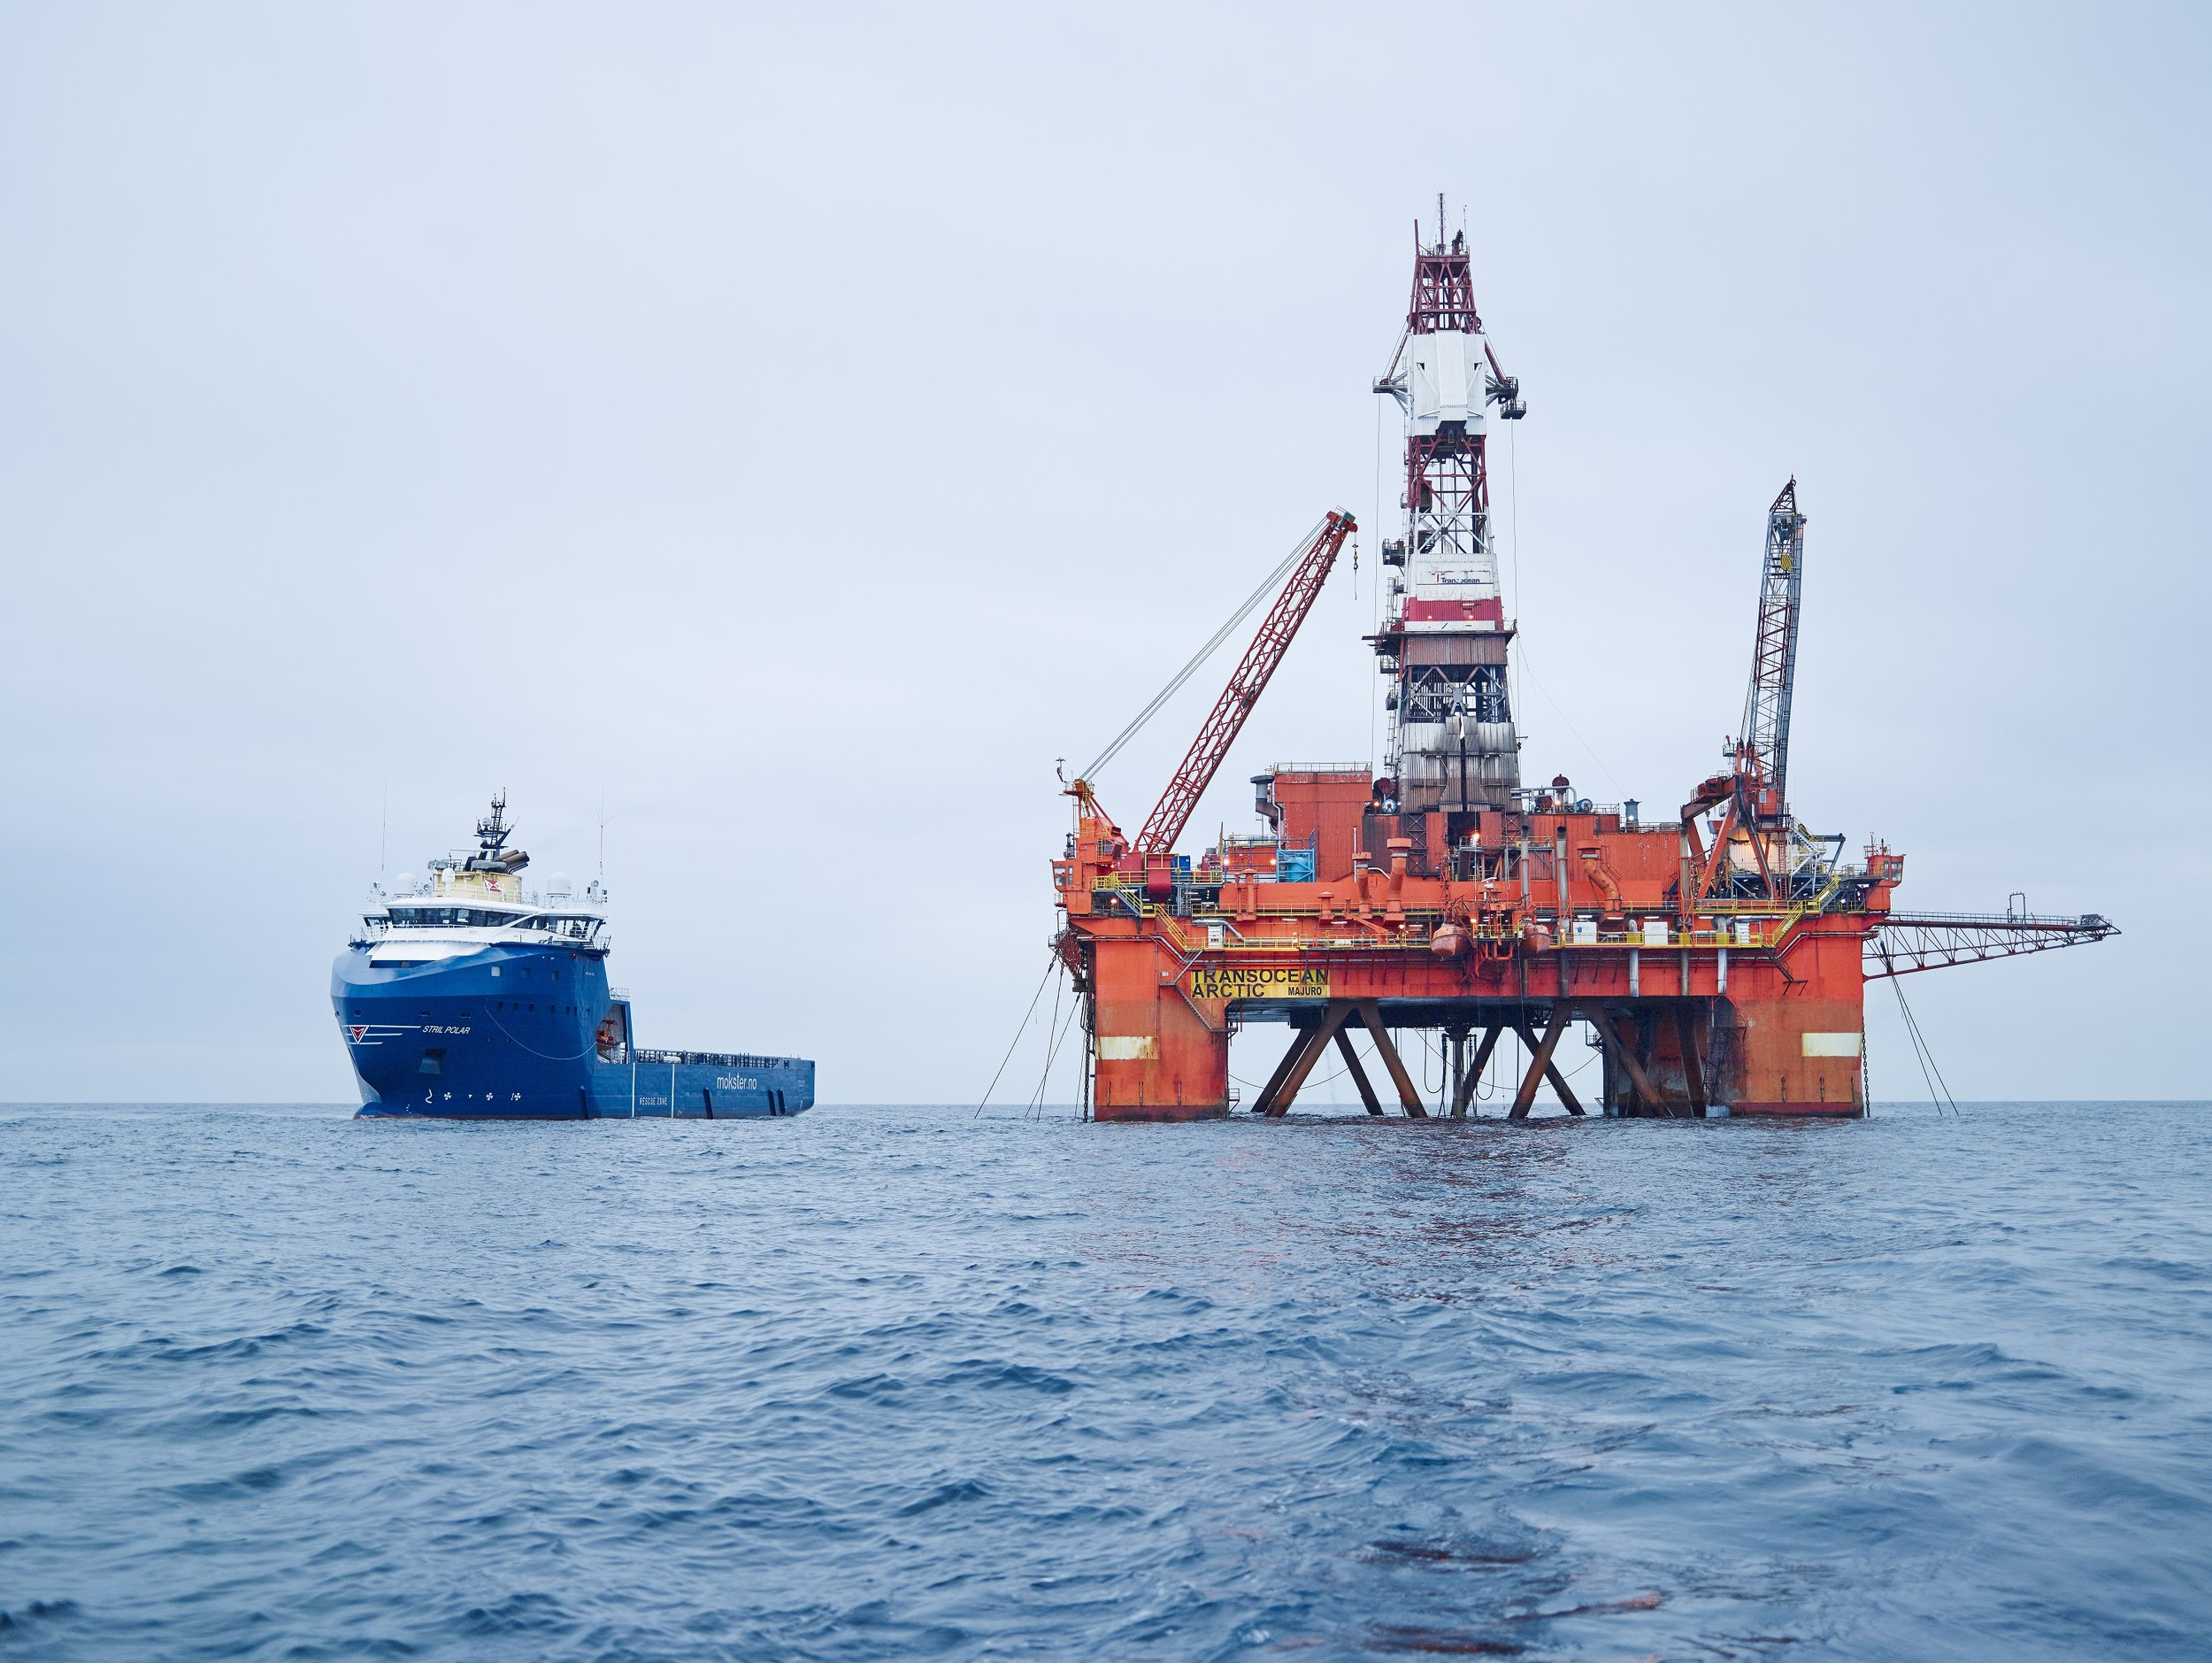 Transocean-Artic-image-by-VNG-Norge.jpg